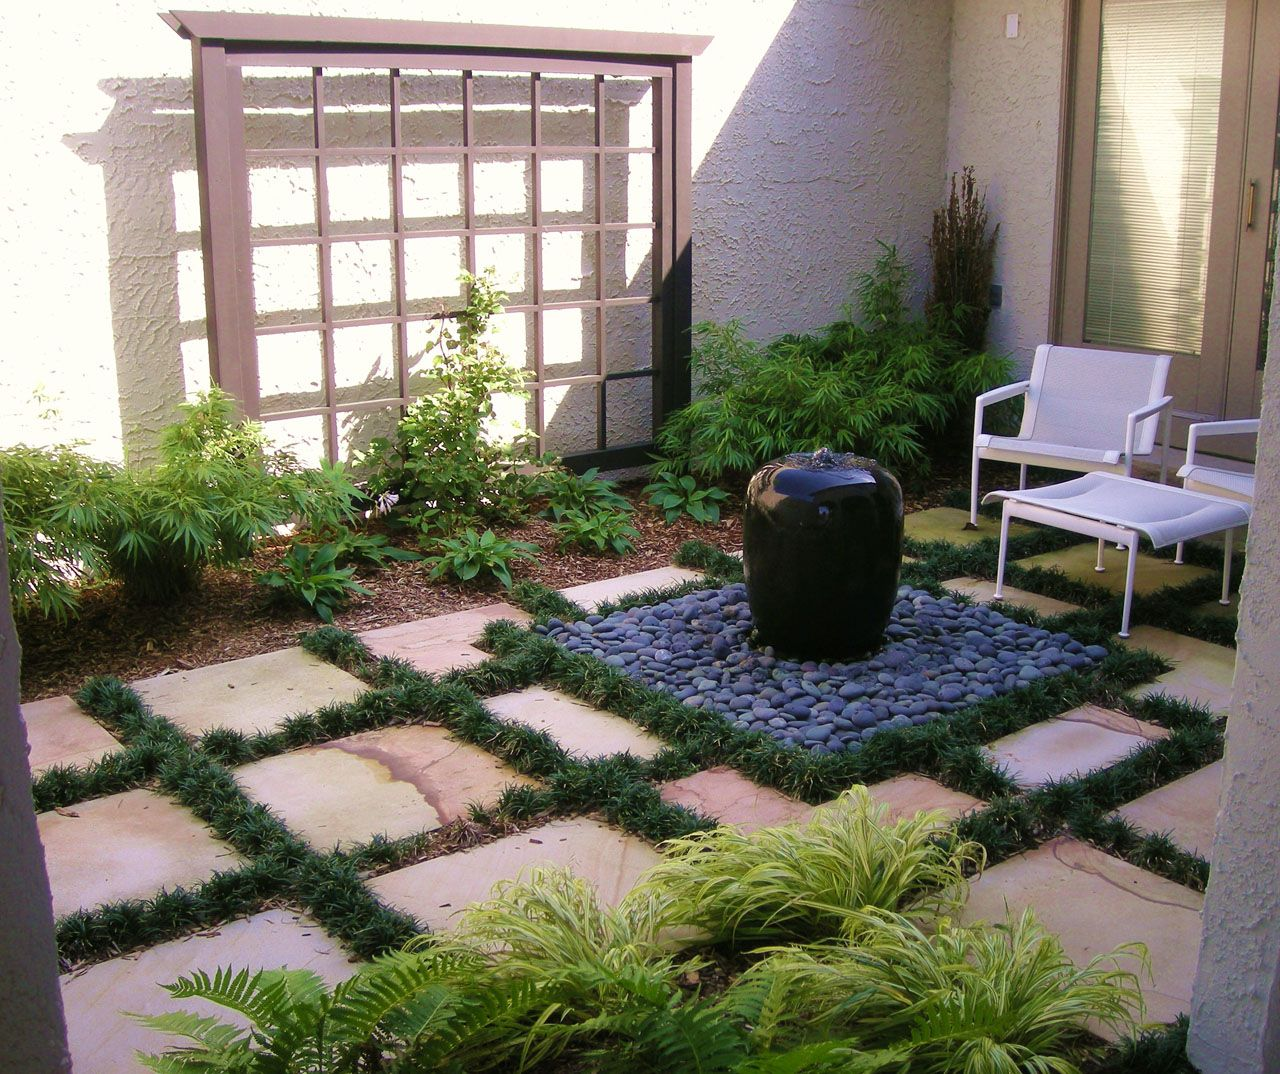 Minimalist Courtyard Design Japanese Style House Small Garden ... on japanese small bedroom ideas, japanese small flowers, japanese small patio ideas, oriental landscaping ideas, japanese small living room ideas, japanese small kitchen design, japanese small landscaping, japanese small food, japanese small patio design, japanese backyard designs, japanese small shower ideas,